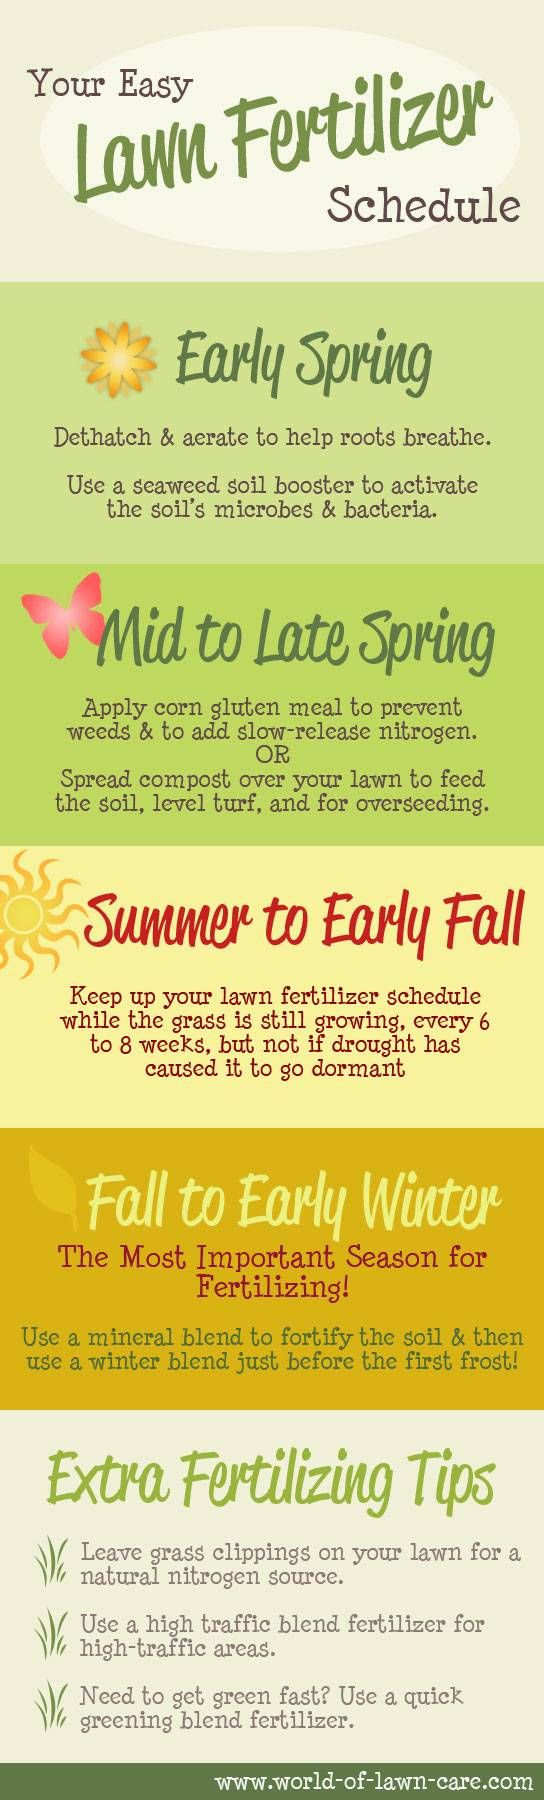 Lawn Fertilizer schedule